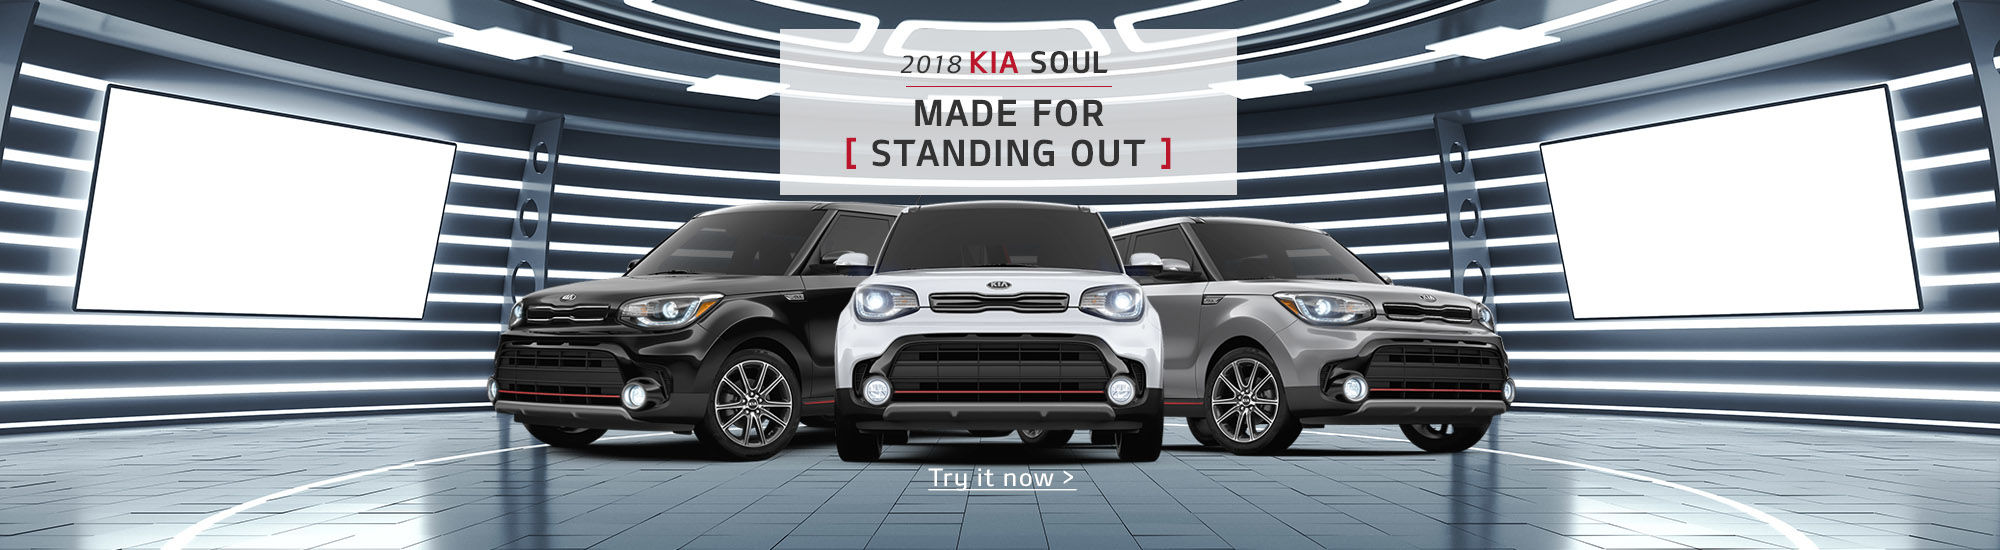 2018 Kia Soul Mode for standing out